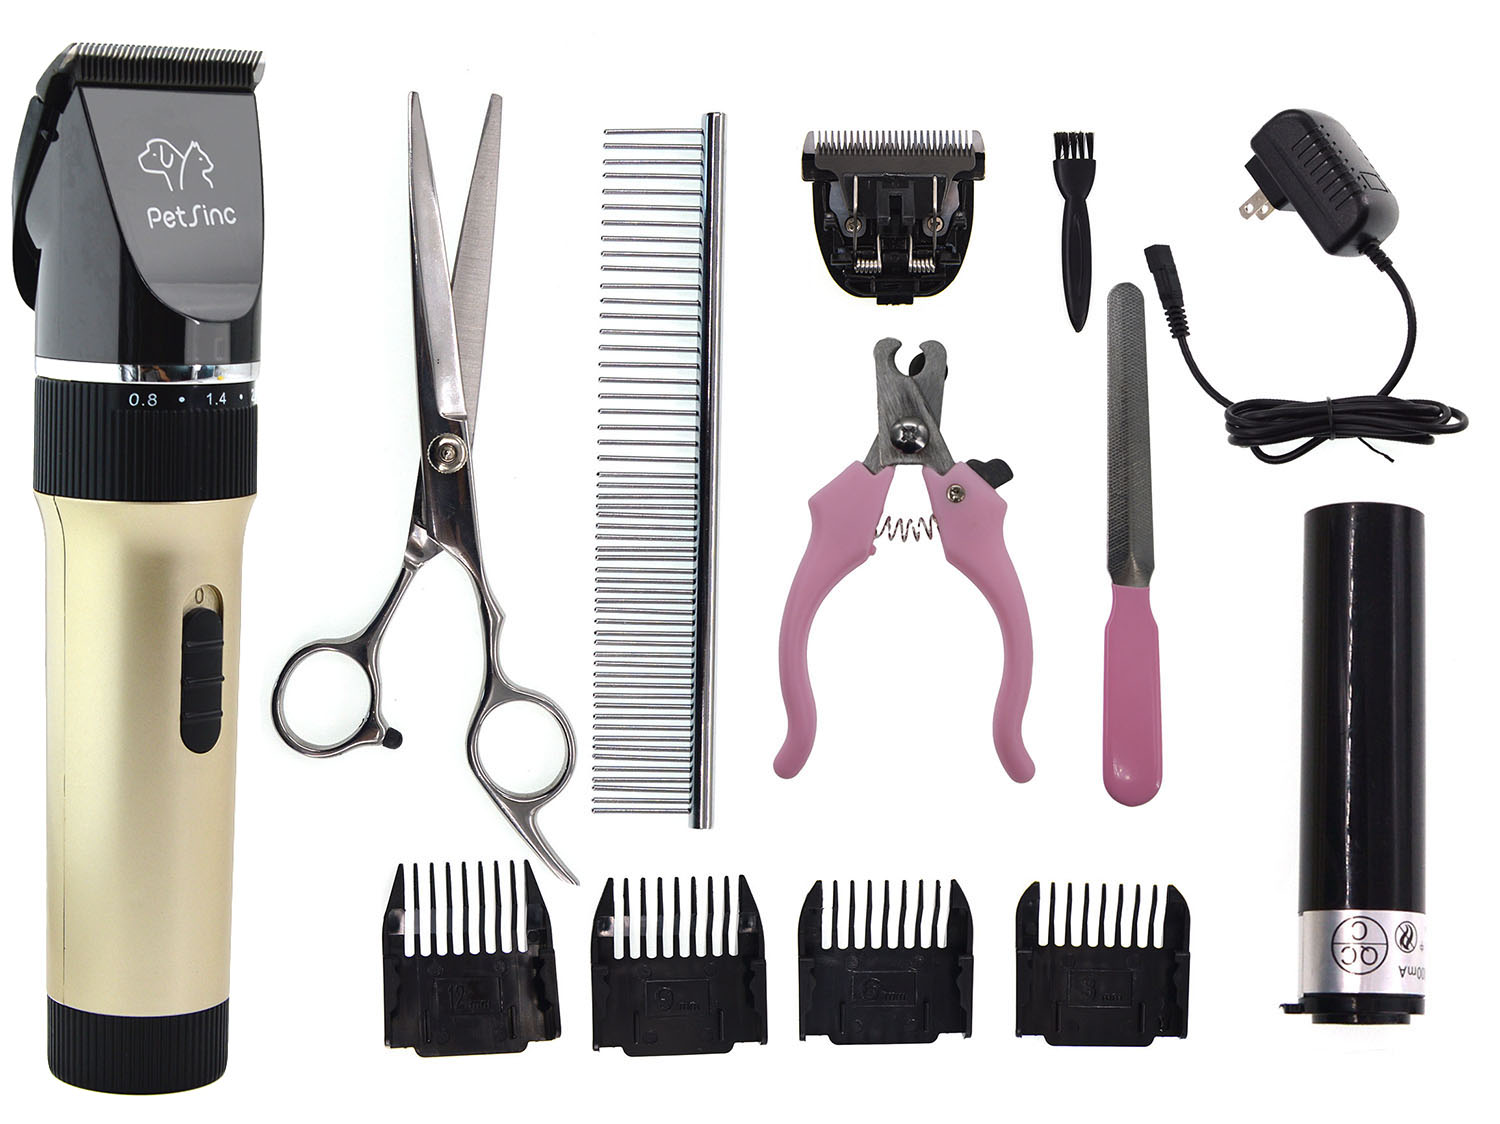 Cat Grooming Kit - Dog Grooming Kit